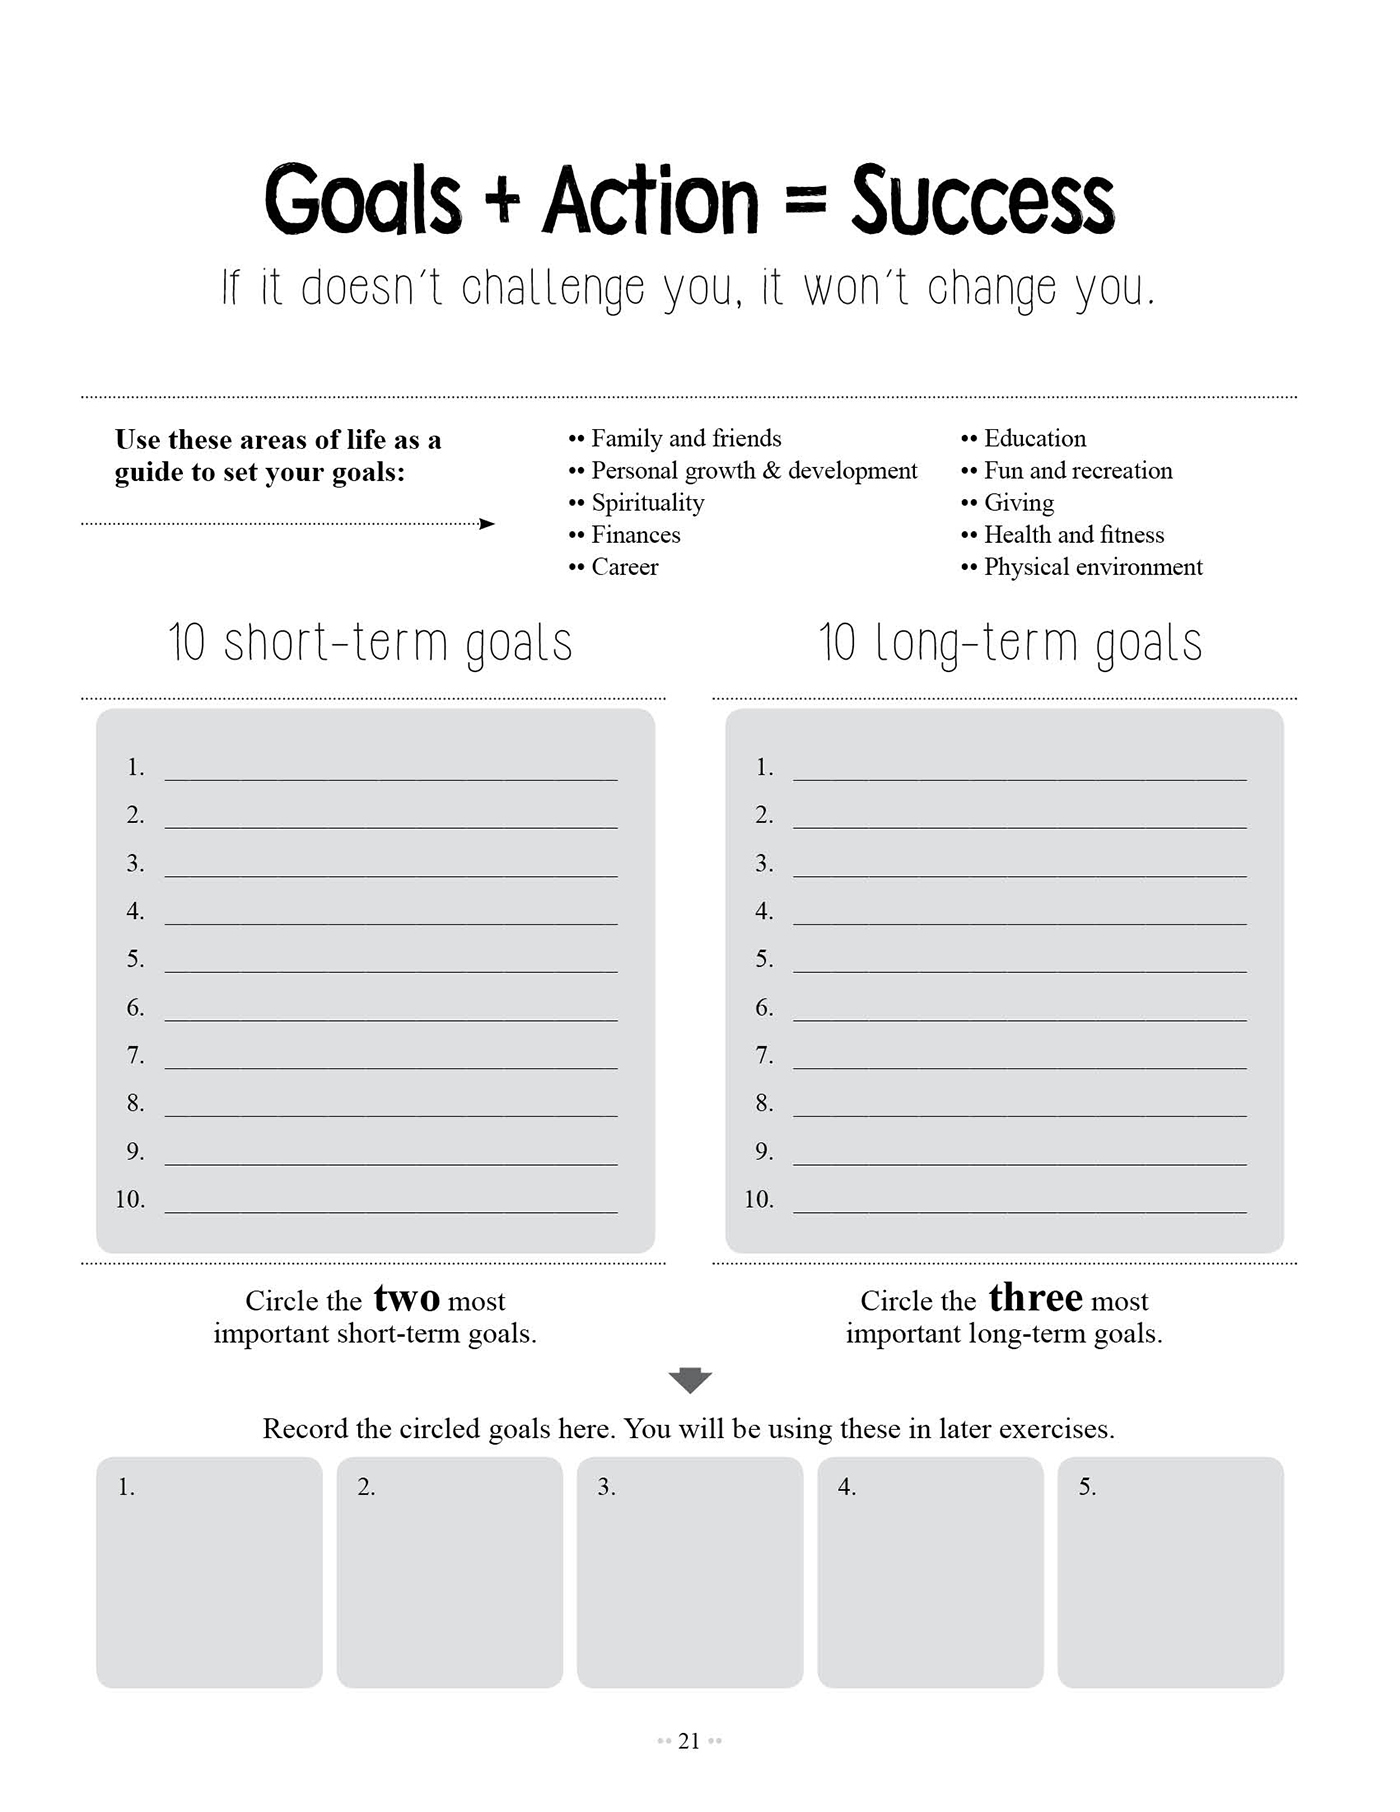 Worksheets Life Goals Worksheet succeeding as a foster child adoption and lifebooks from worksheet this starts the process of setting